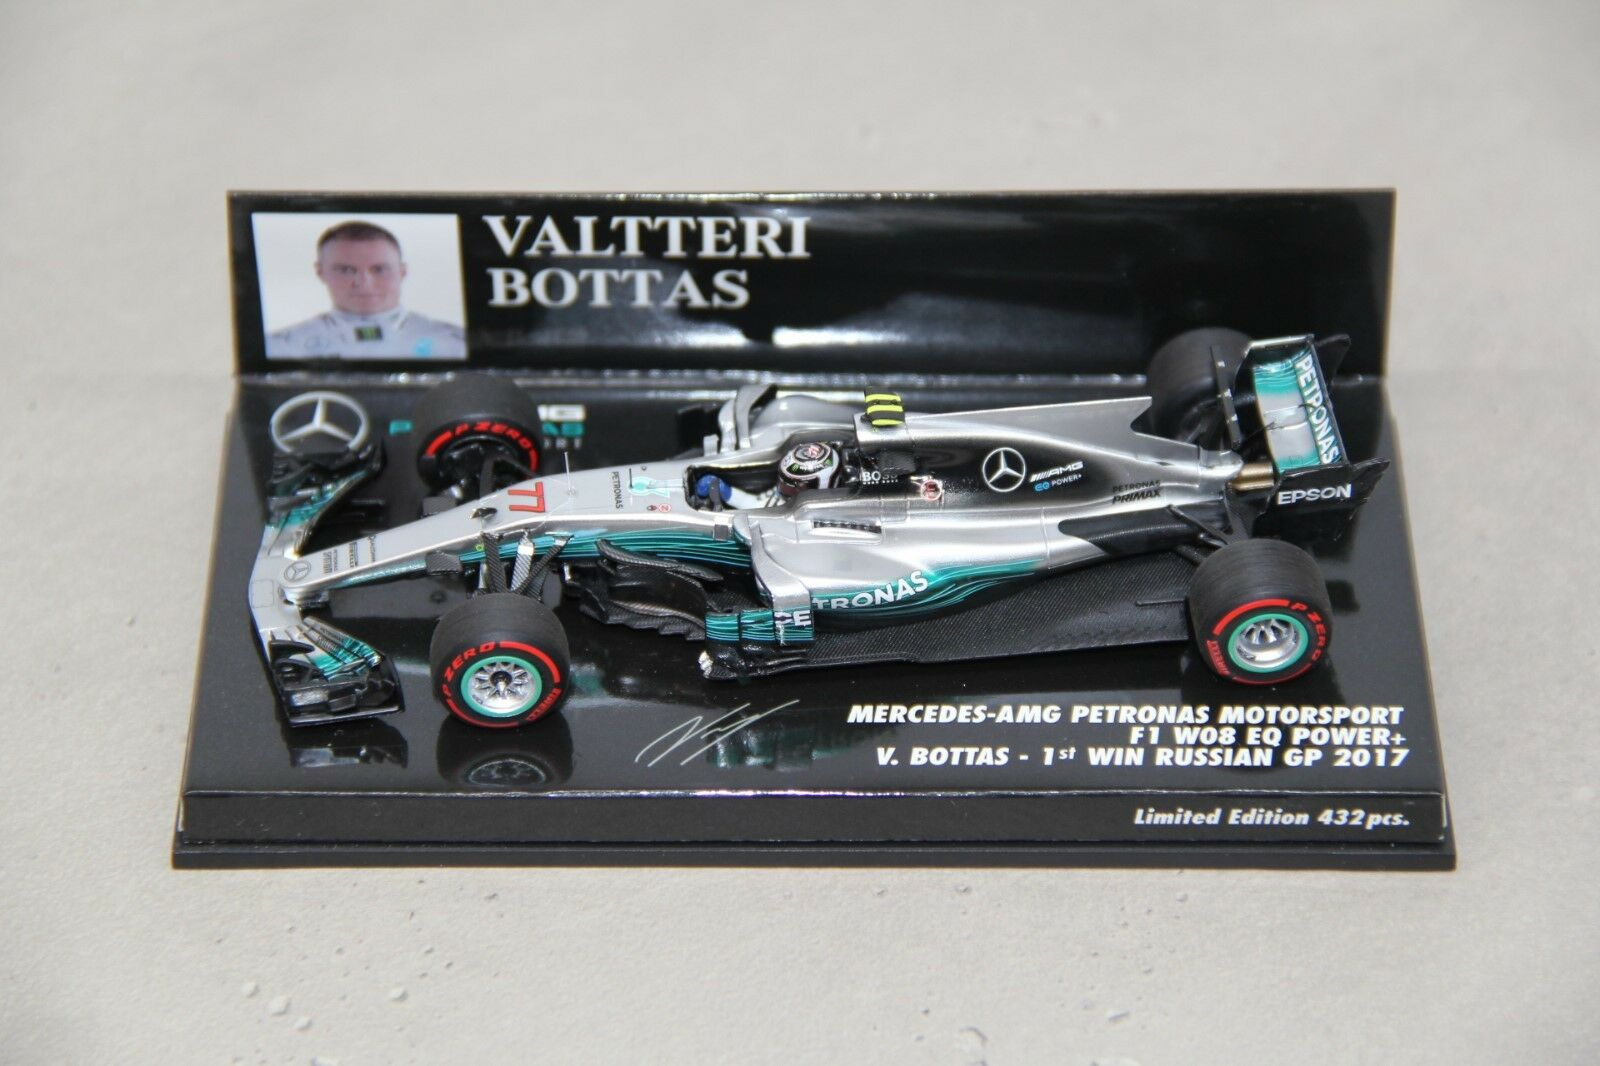 Minichamps 1 43 Mercedes F1 W08 V. Bottas 1st win Russia GP 2017 OVP Russian